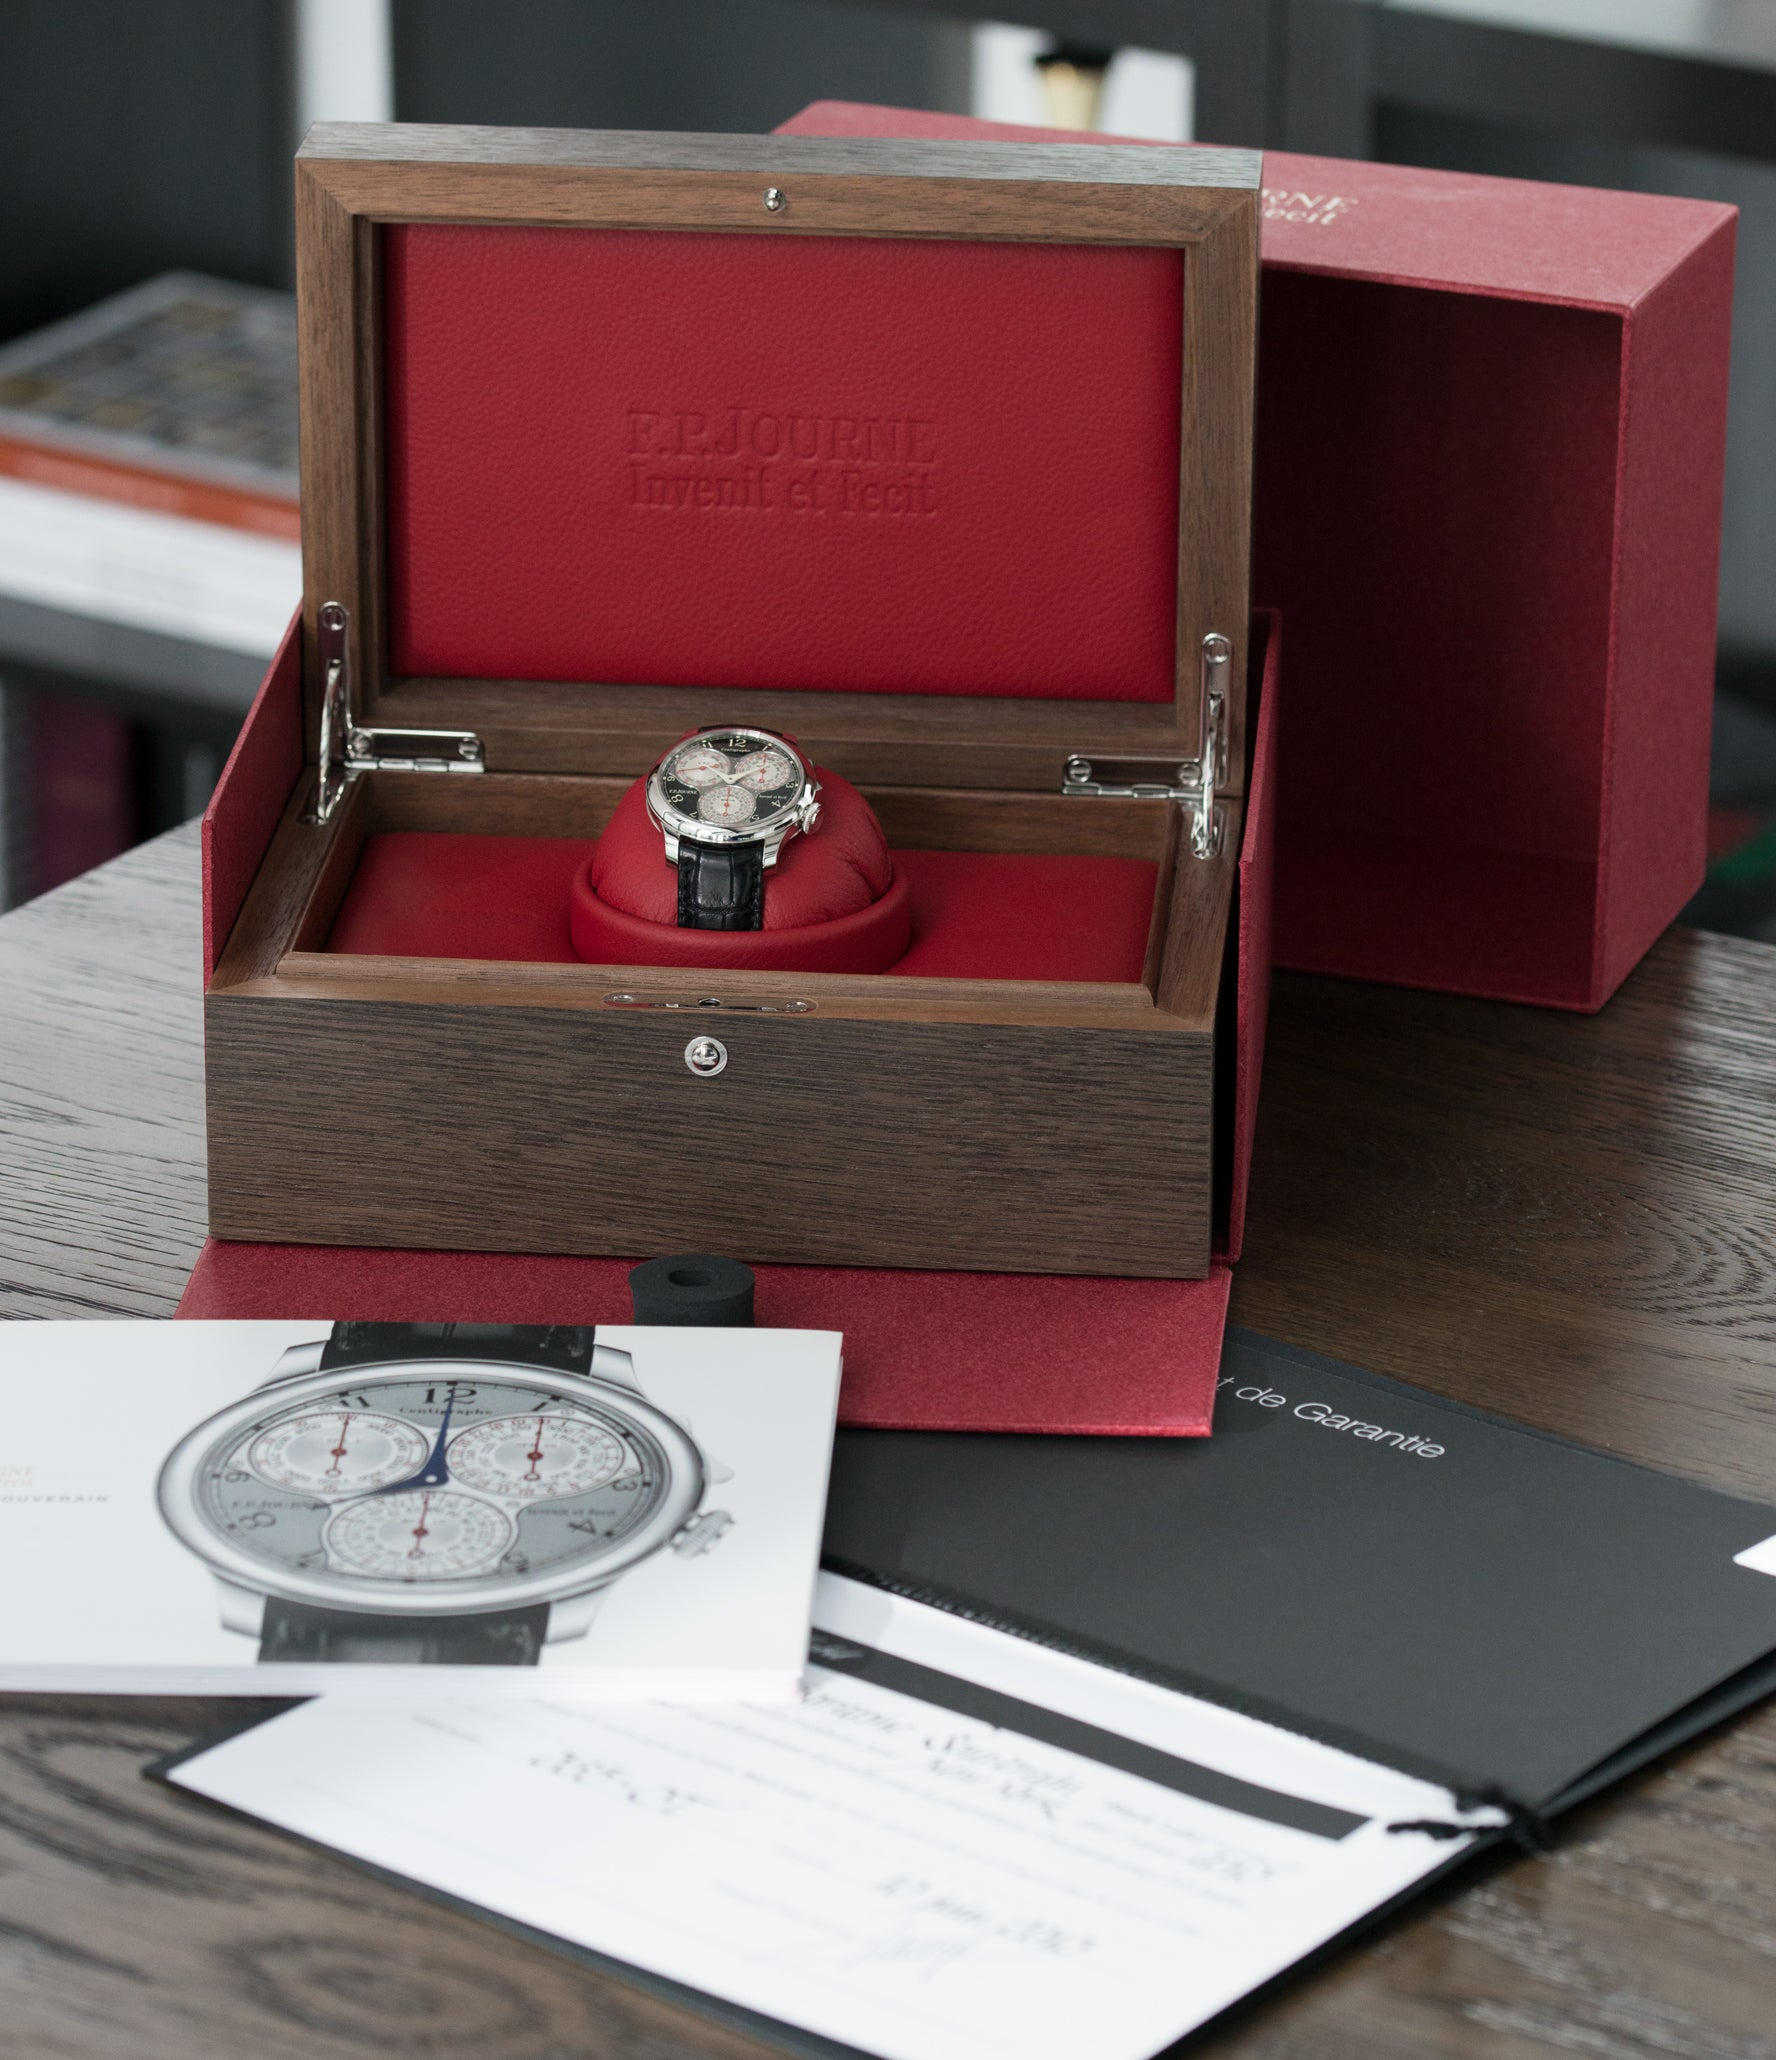 full set F. P. Journe Centigraphe Souverain Black Label 40 mm platinum pre-owned rare watch for sale online at A Collected Man London approved retailer of independent watchmakers